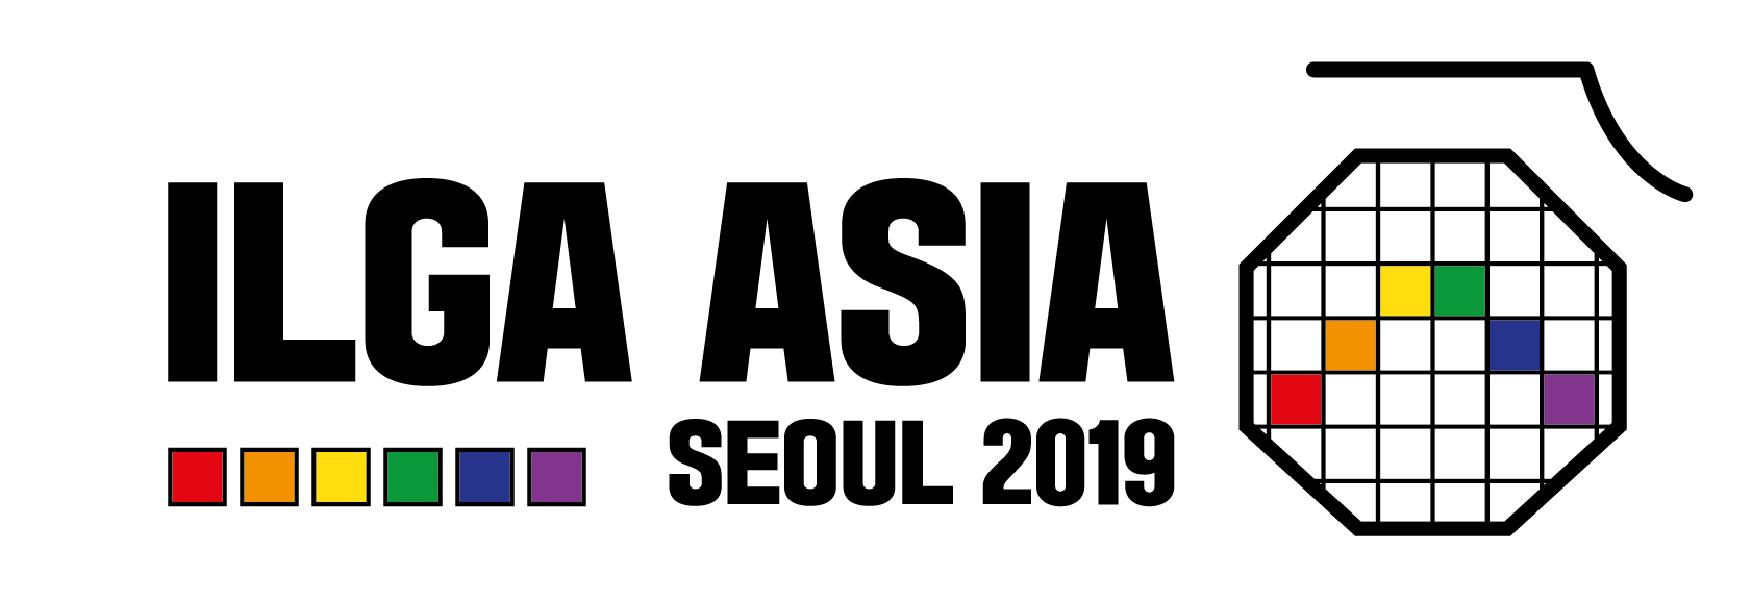 ILGA Asia Conf 2019 Main logo - transparent with white window (v)@4x.png